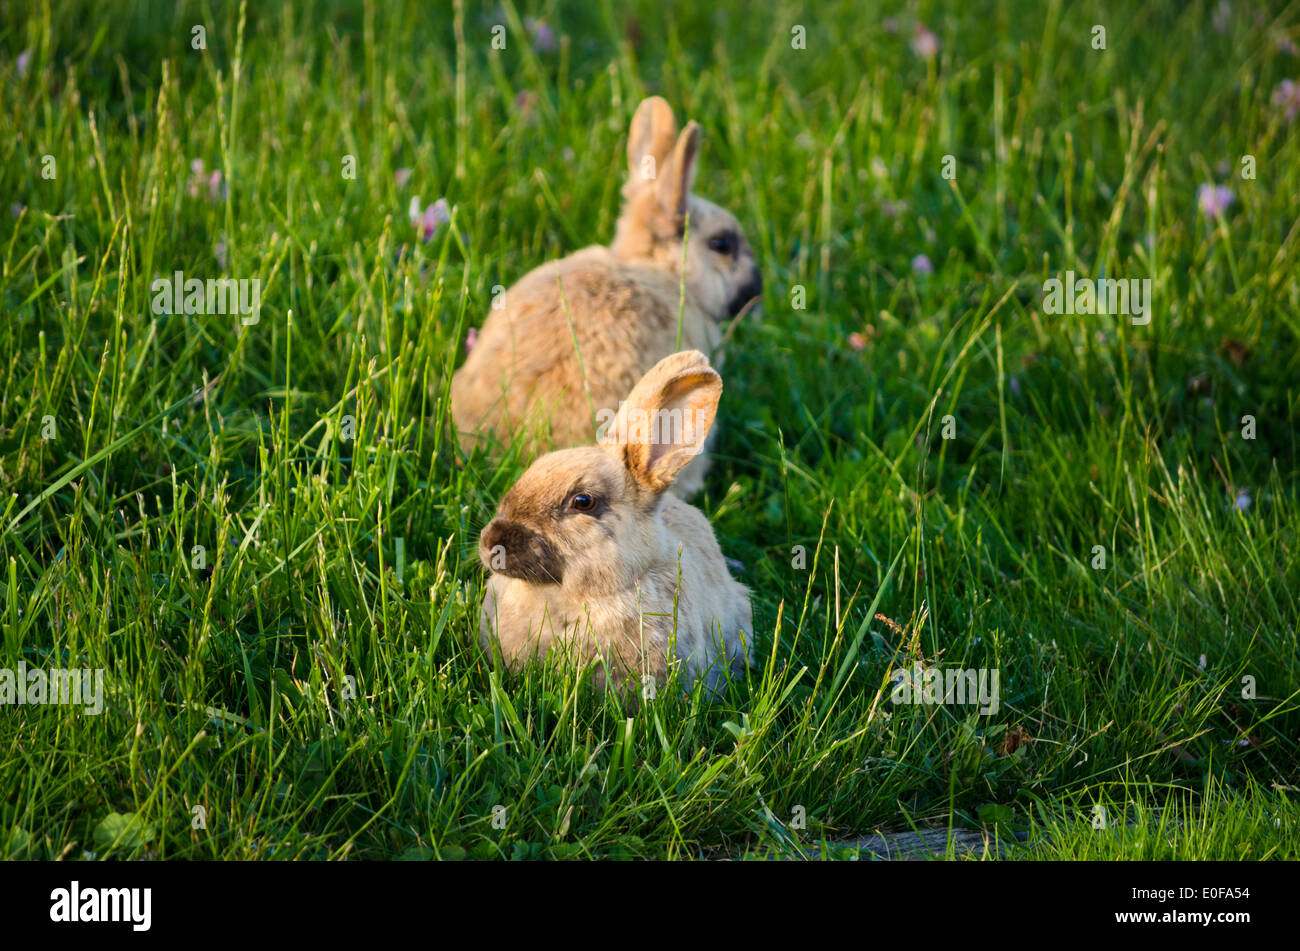 Two cute bunnies or rabbits in the grass. Stock Photo